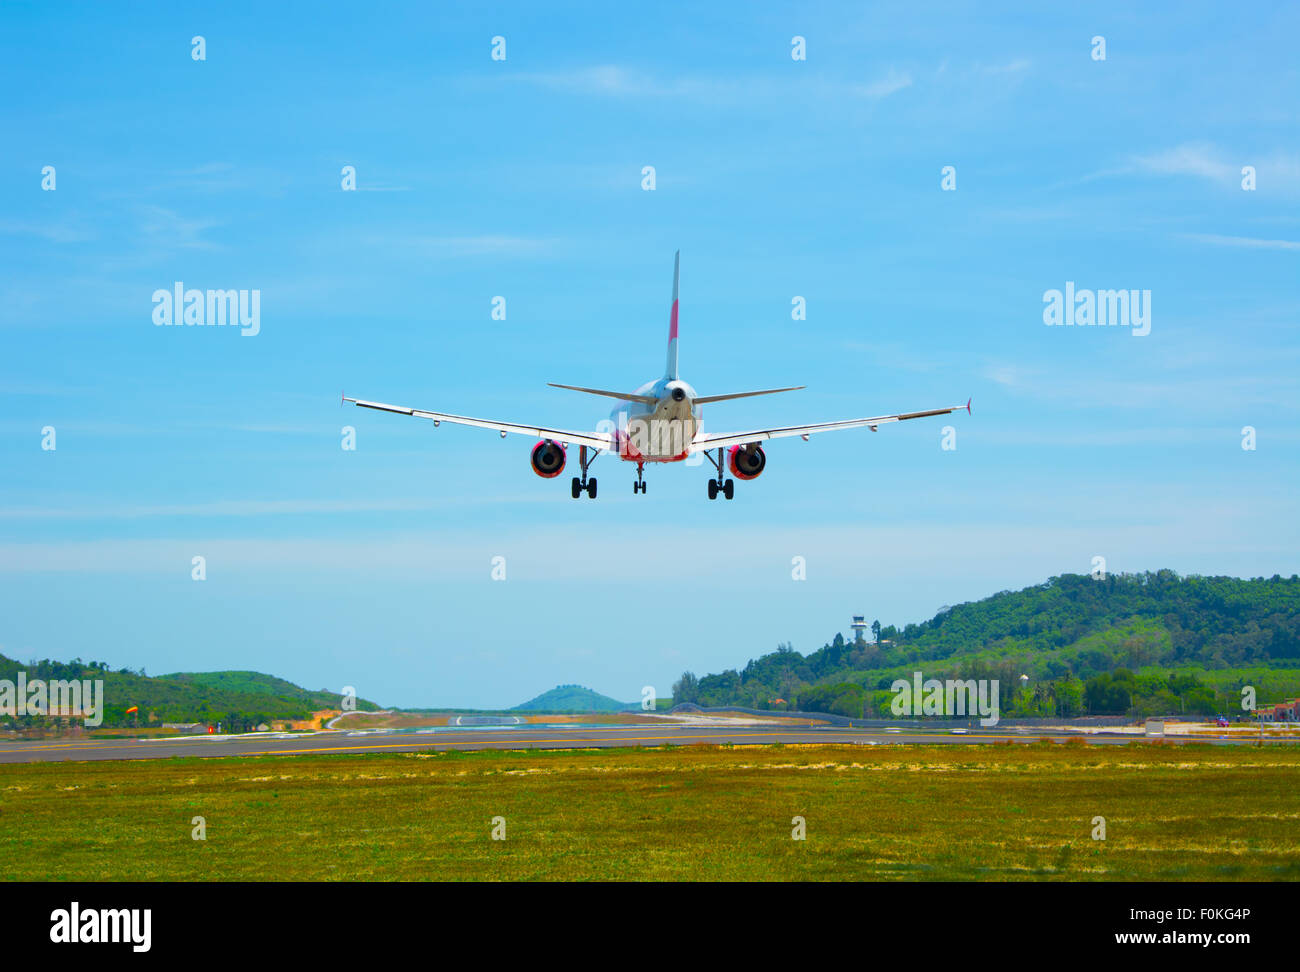 Twin-engine, modern, big commercial airliner coming for a landing at an airport - Stock Image